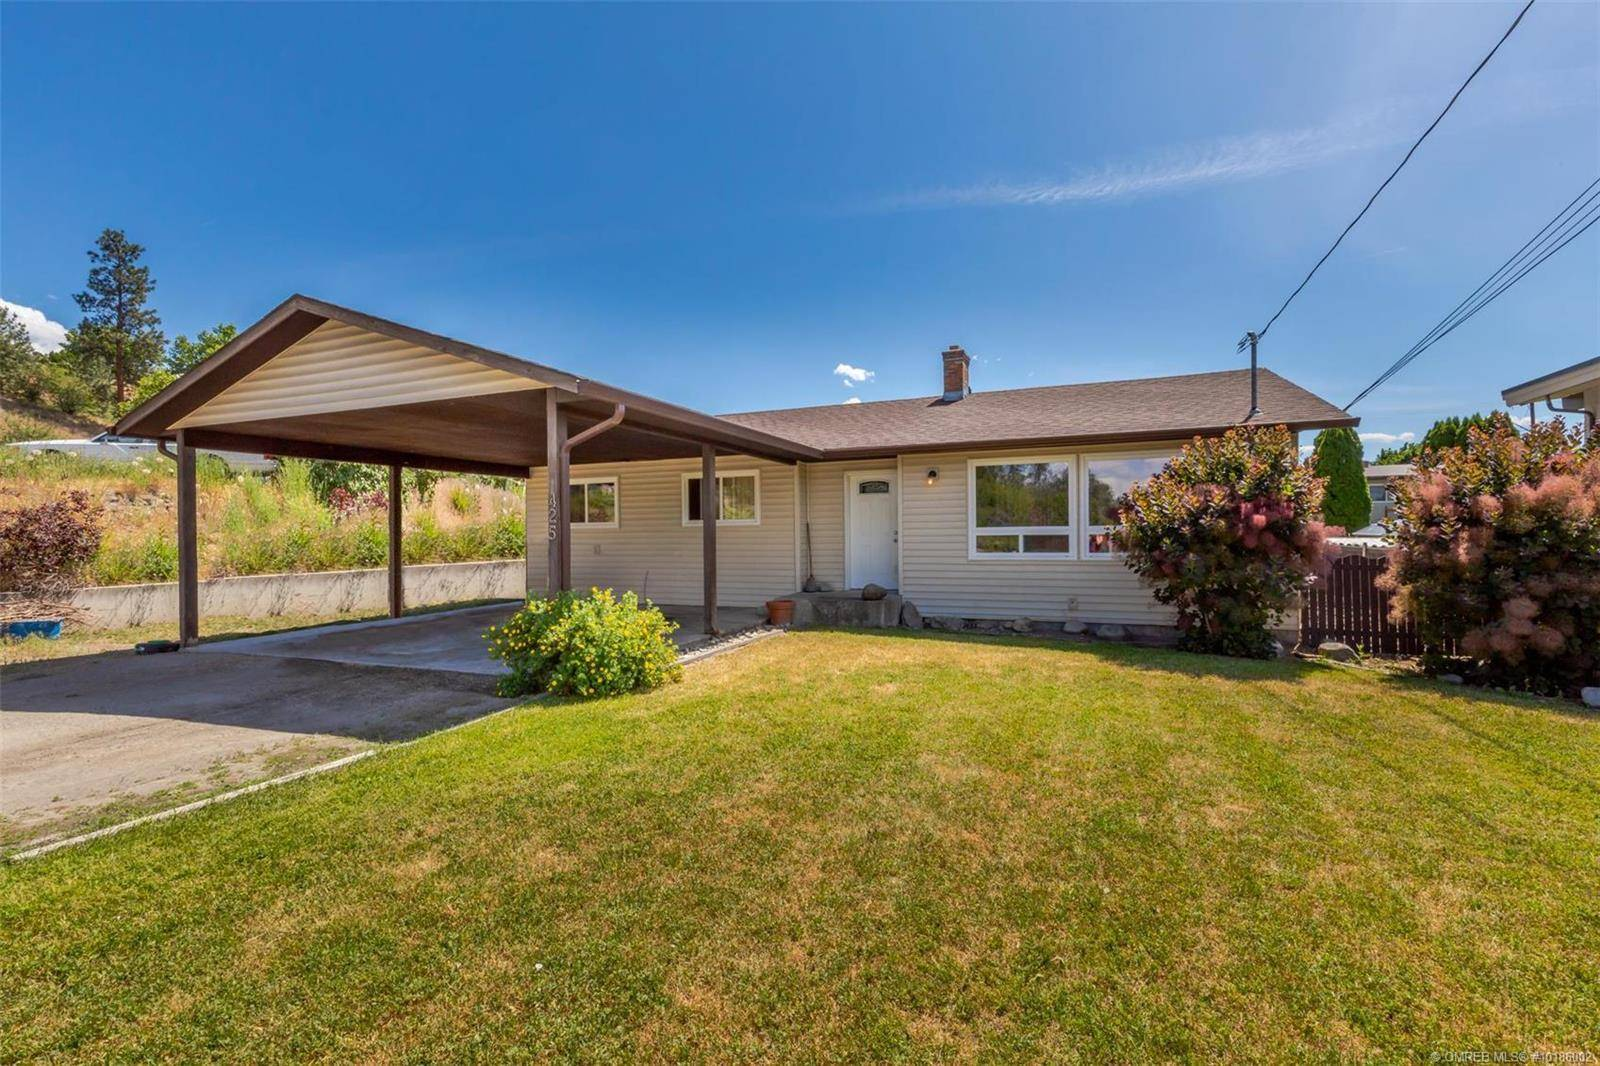 House for sale at 425 Perry Rd Kelowna British Columbia - MLS: 10186002